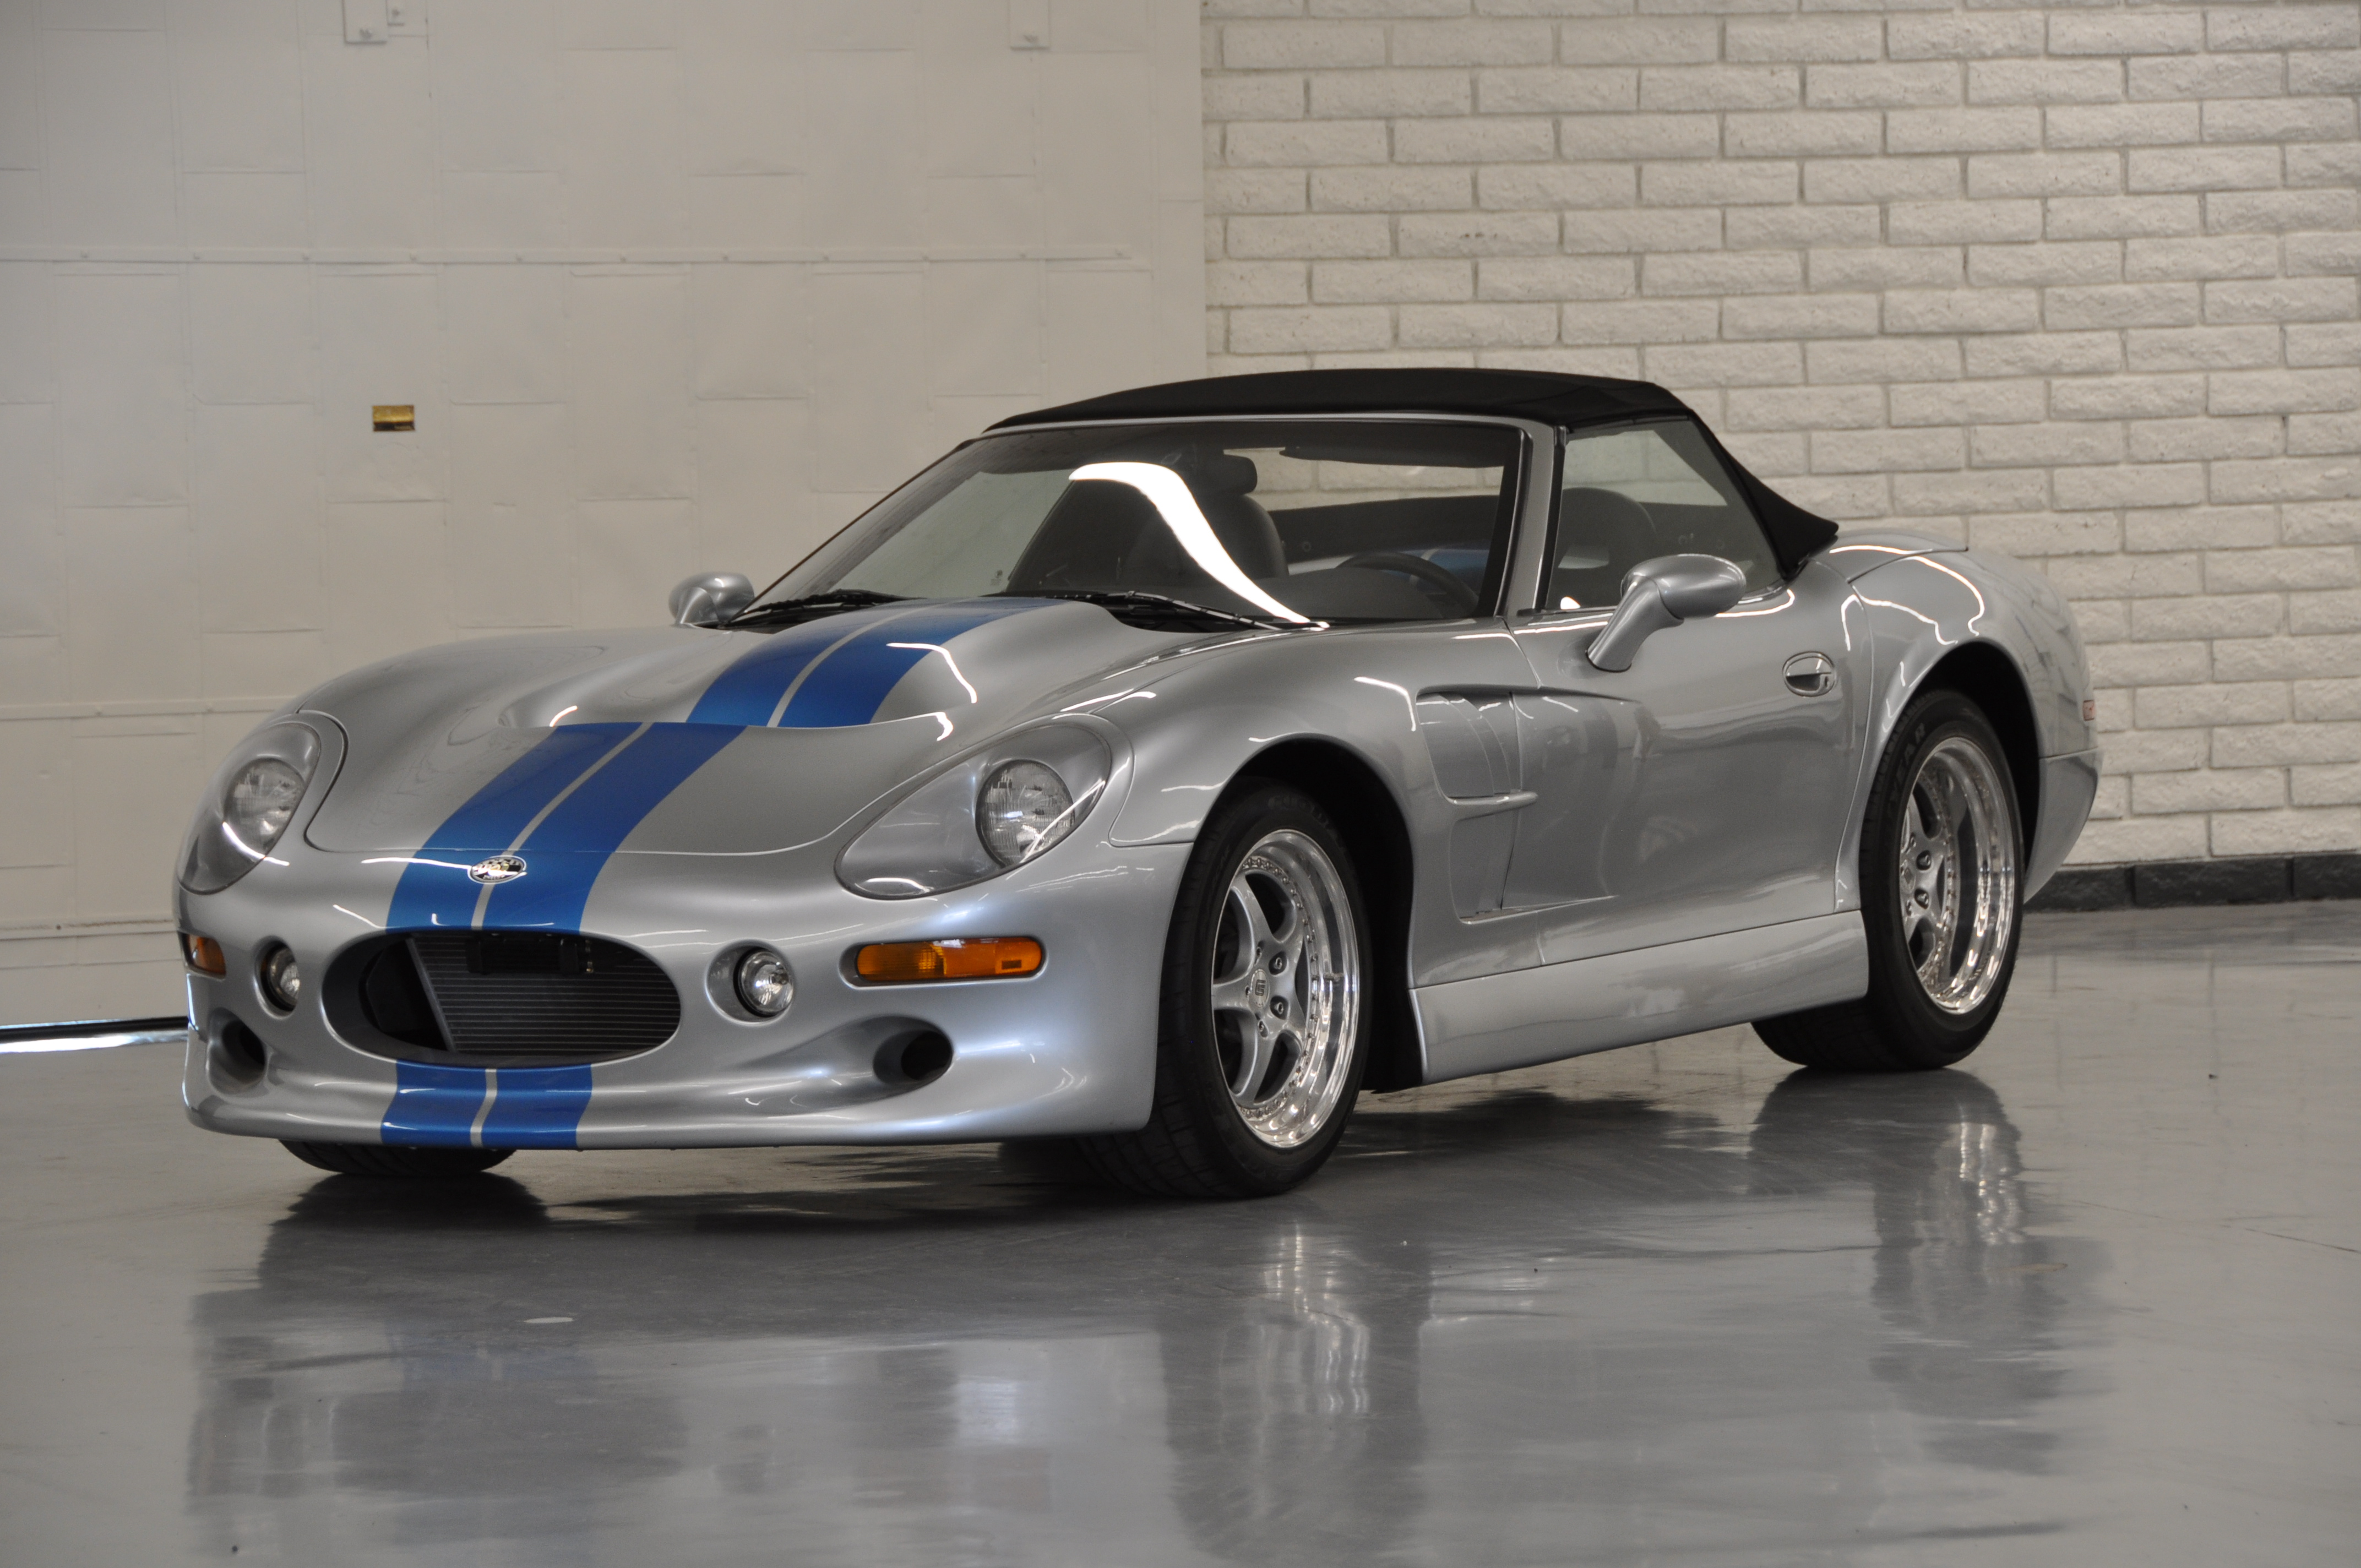 1999 Shelby Series 1  90 miles from new